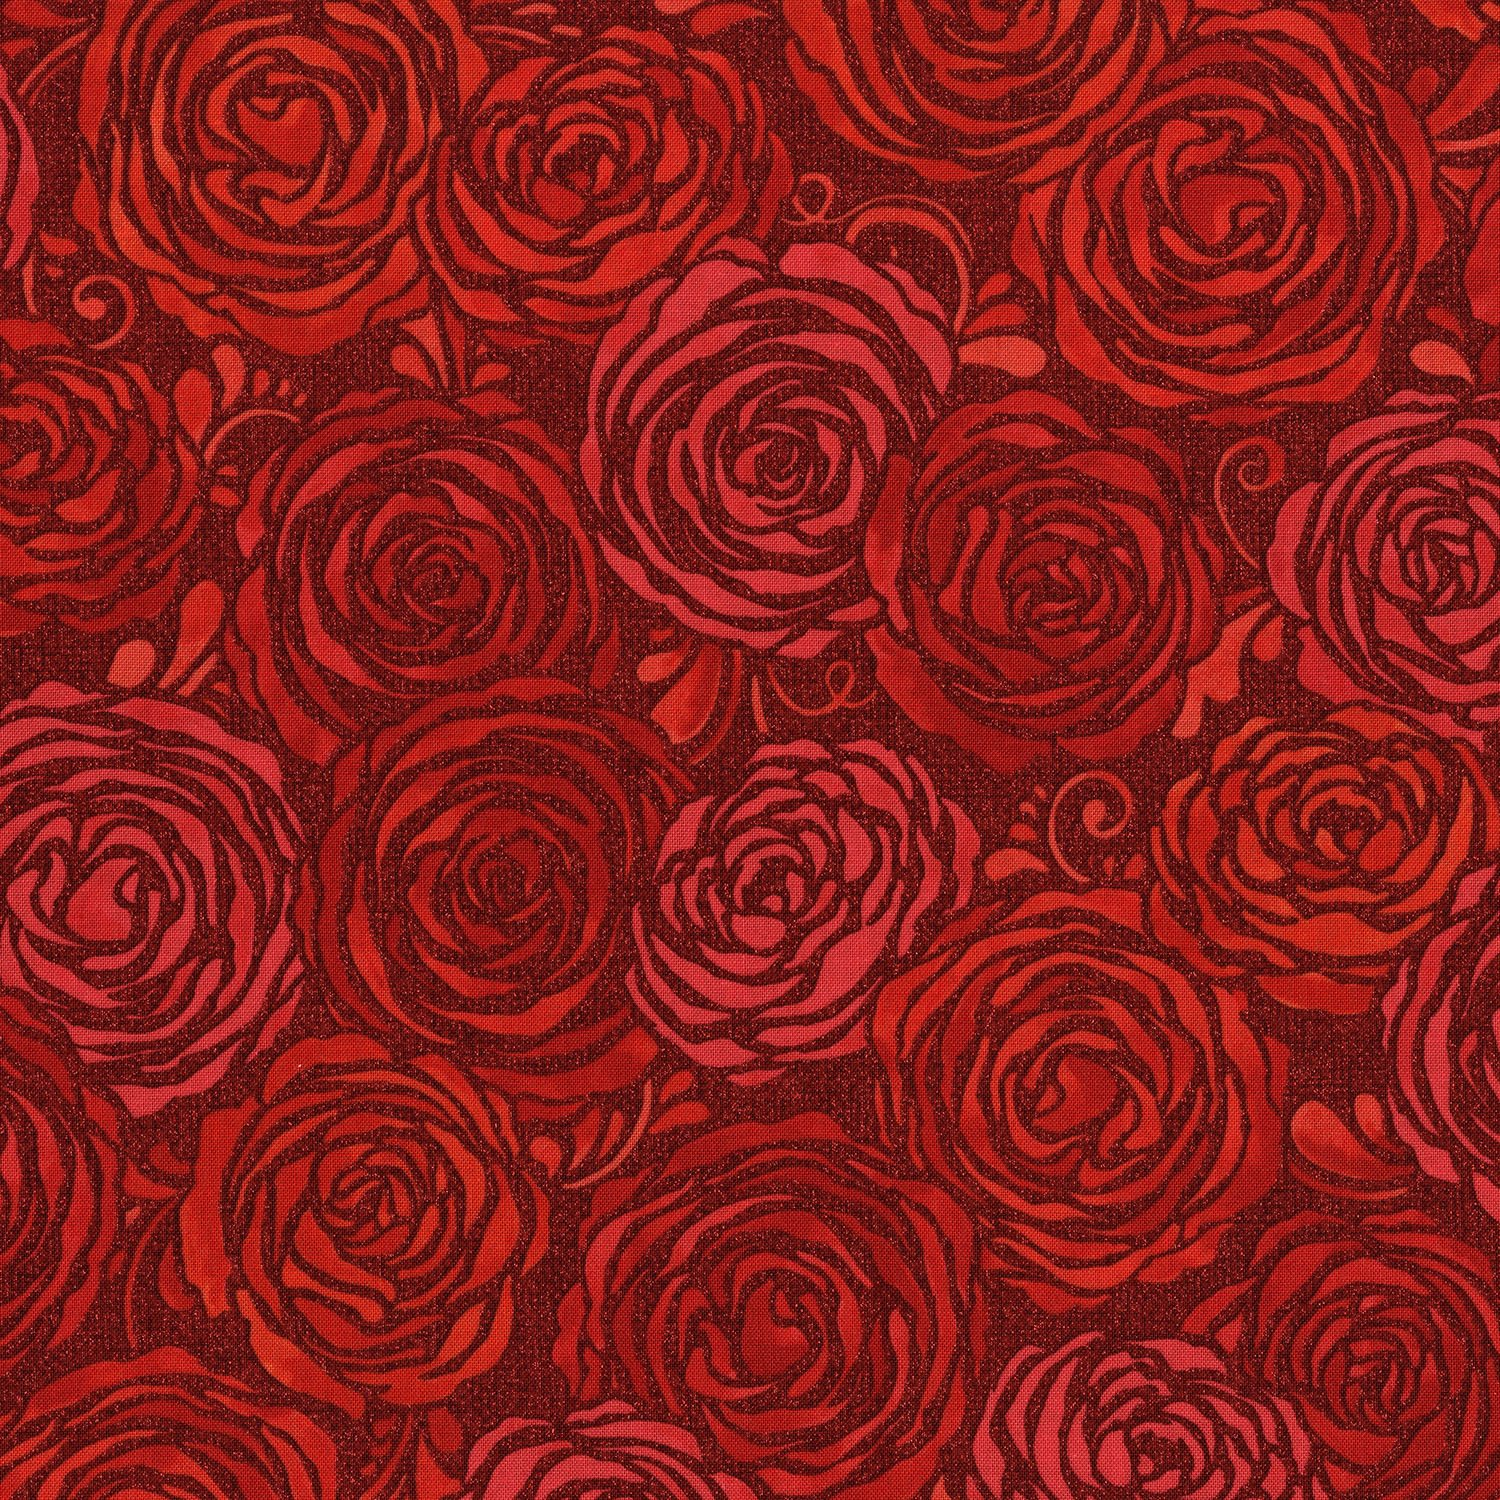 Sugar Berry Candied Roses Radiant Ruby